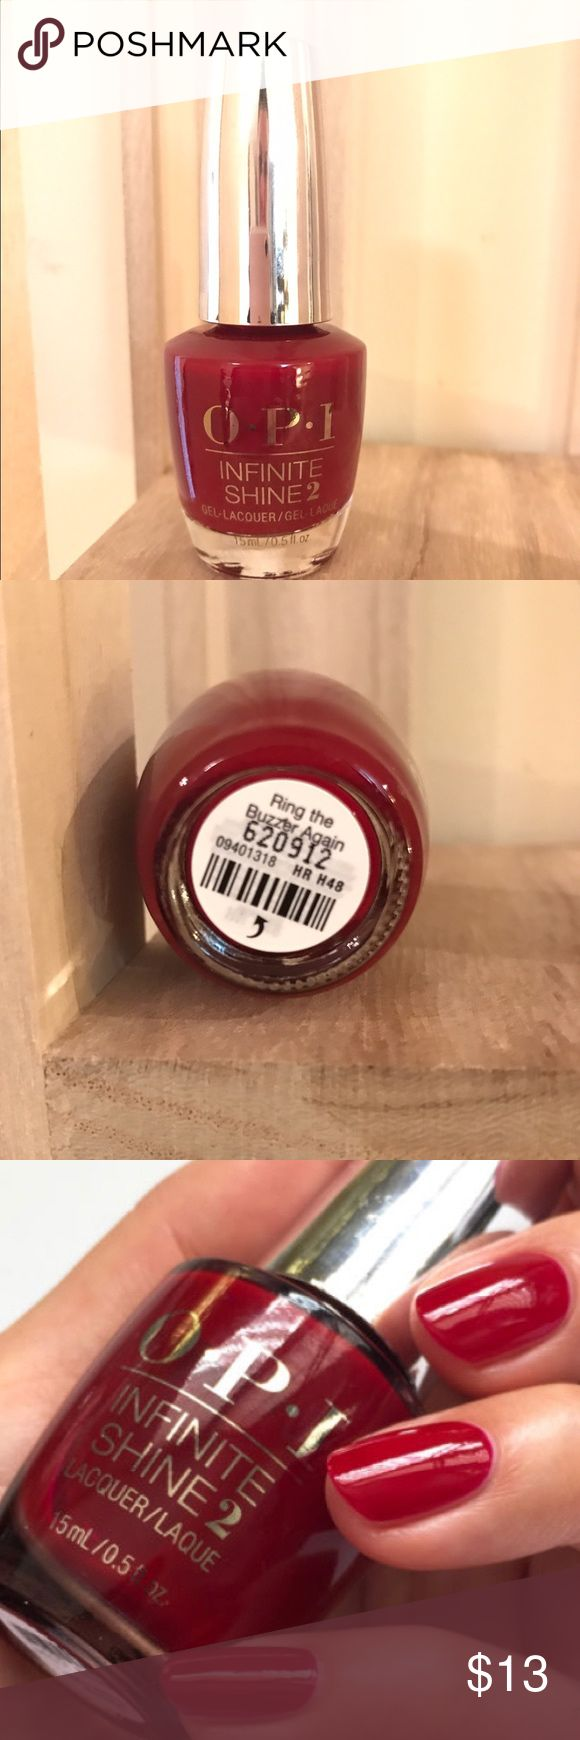 🌸2 for 15 NWT OPI infinite Shine NWT OPI infinite Shine 'ring the buzzer again' breakfast at Tiffany's collection💥💥price is firm unless bundles. To get the 2 for 15 OPI deal , bundle the items you want and select bundle offer- OPI infinite Shine can be bundled with OPI color NOT OPI GelColor OPI Makeup